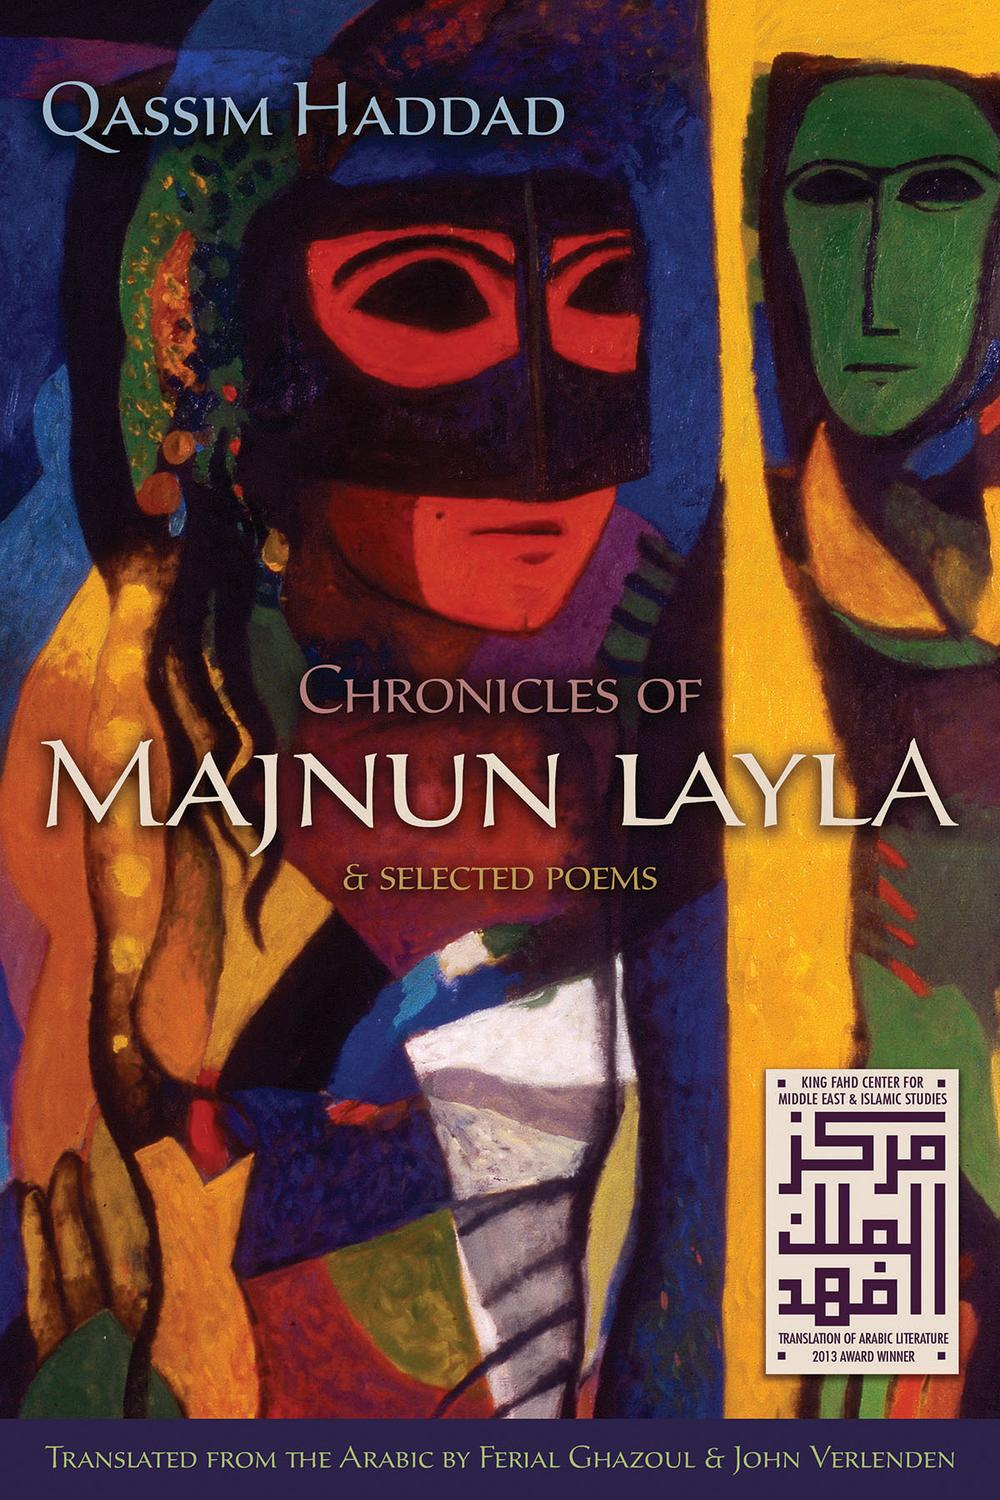 Chronicles of Majnun Layla and Selected Poems by Qassim